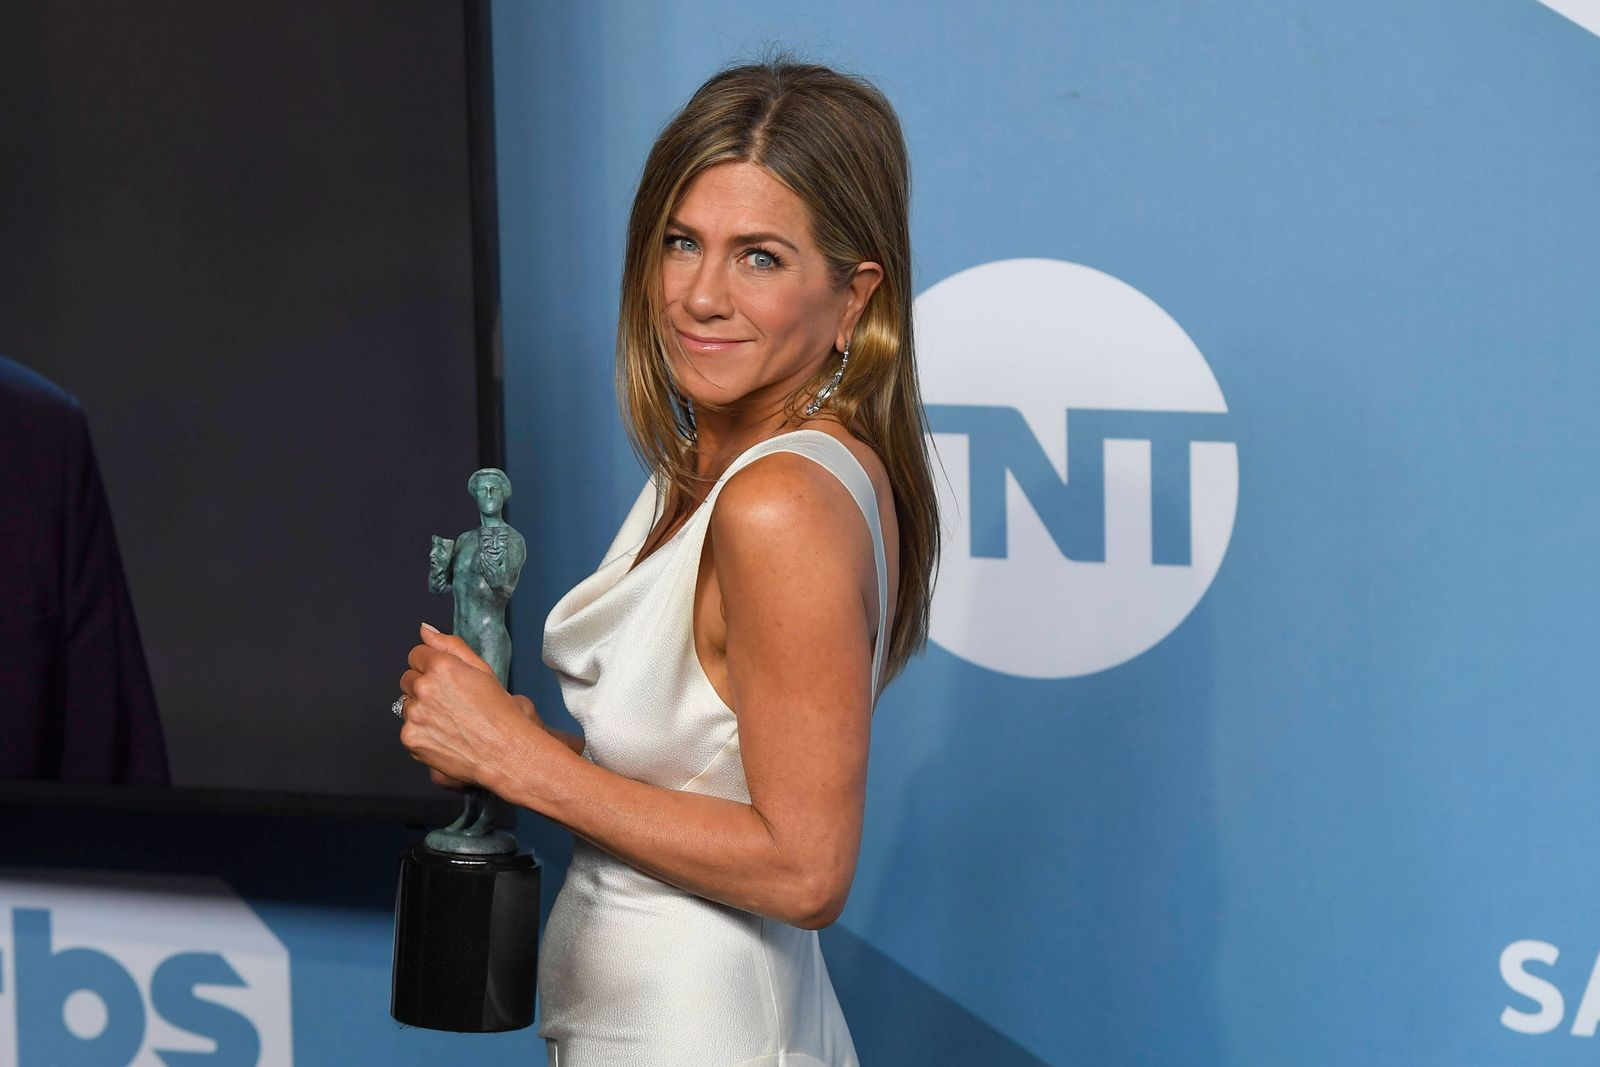 January 19, 2020, Los Angeles, California, USA: JENNIFER ANISTON in the Press Room during the 26th Annual Screen Actors